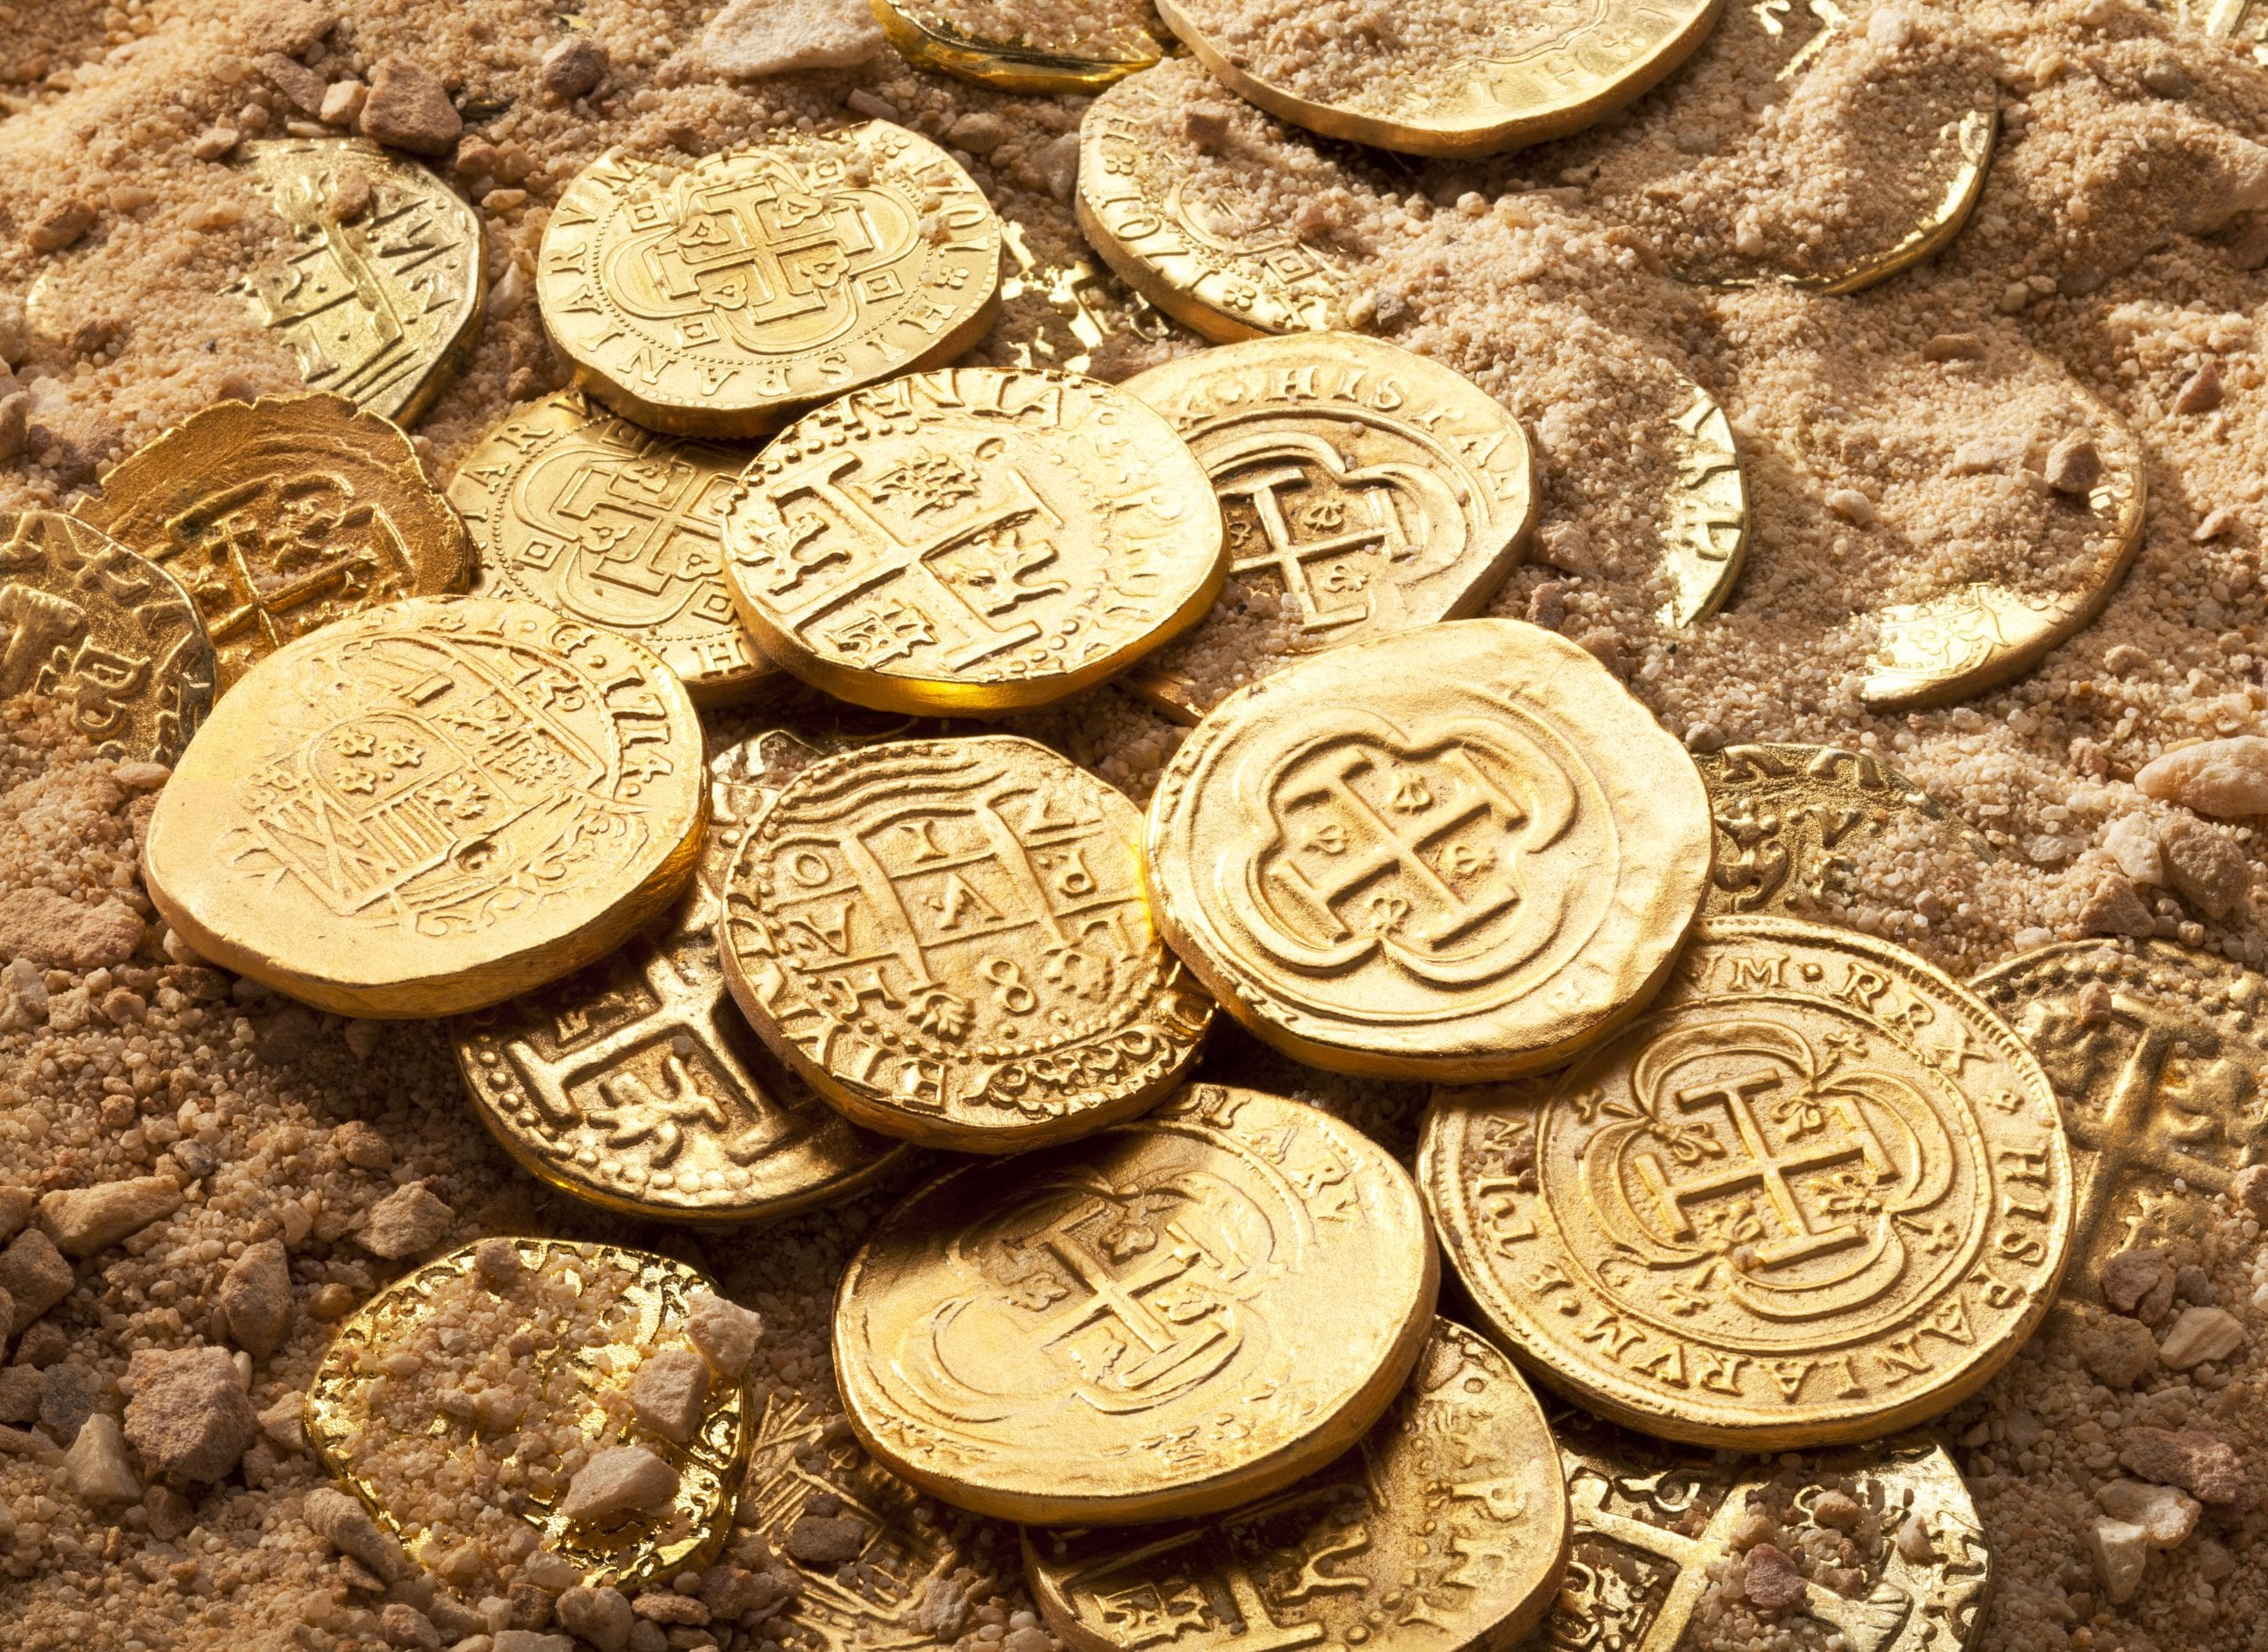 Centuries old variety of gold doubloons and gold cobbs.